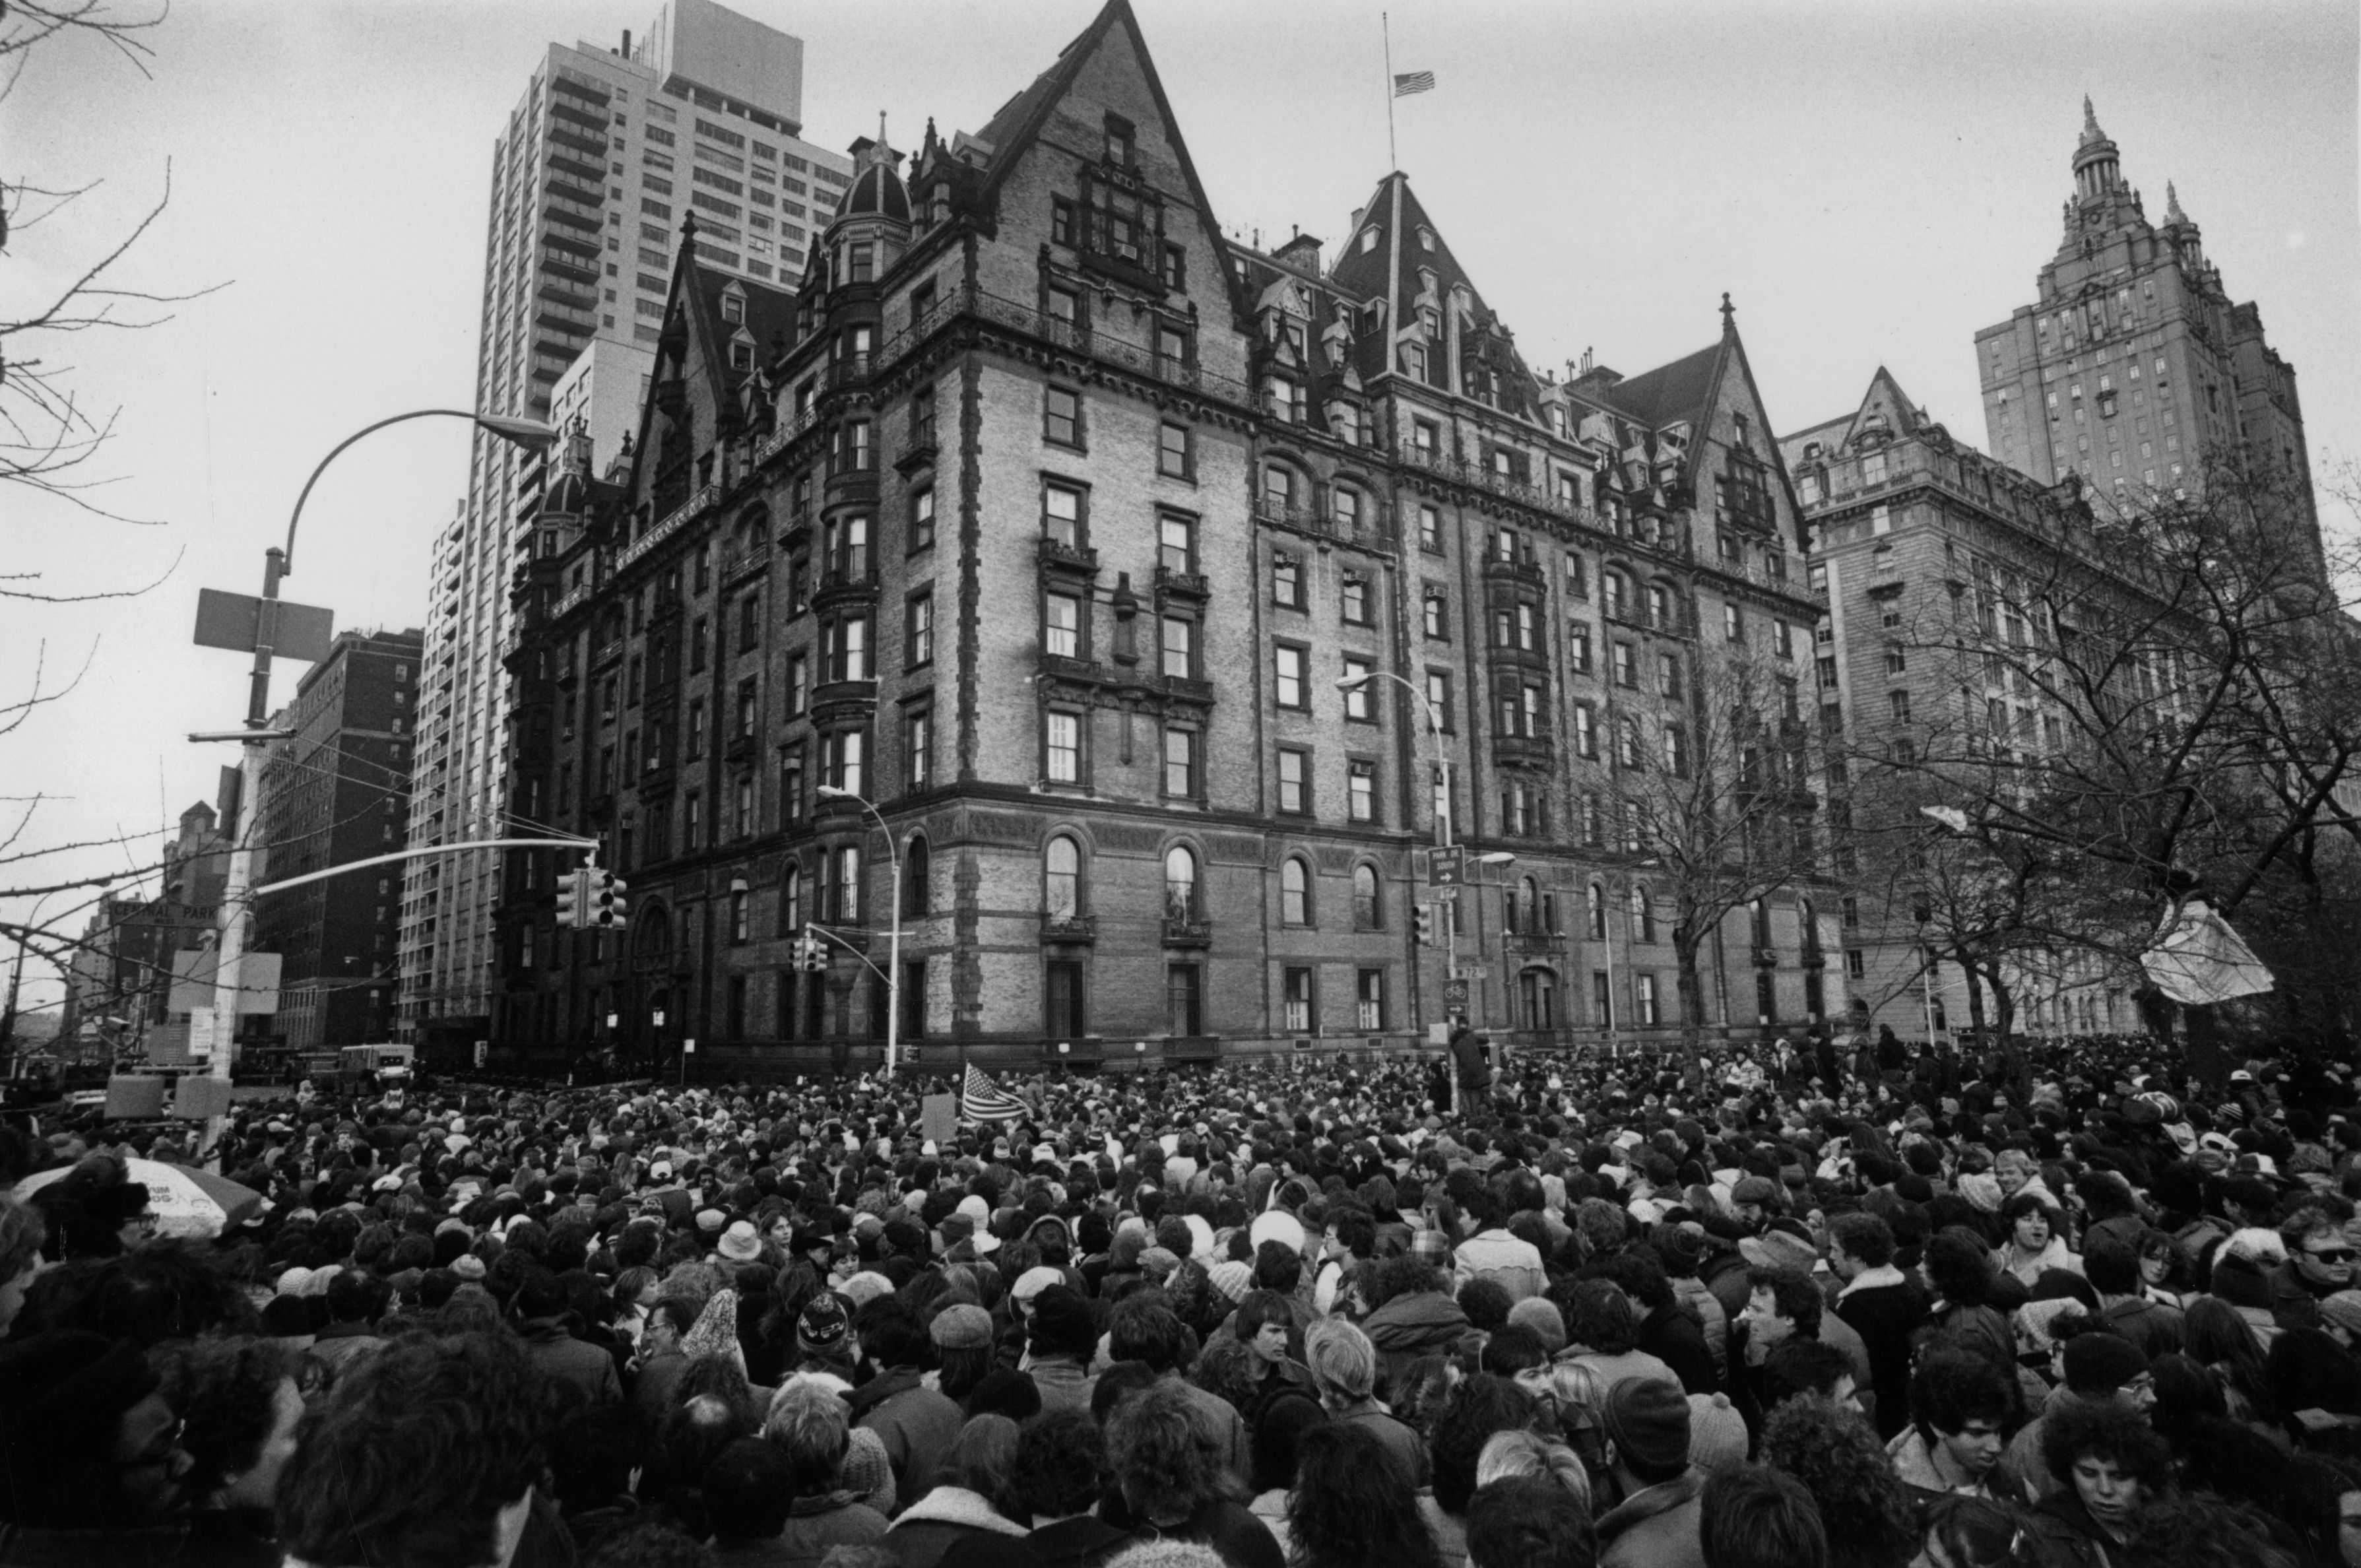 Crowds gathering outside the home of John Lennon